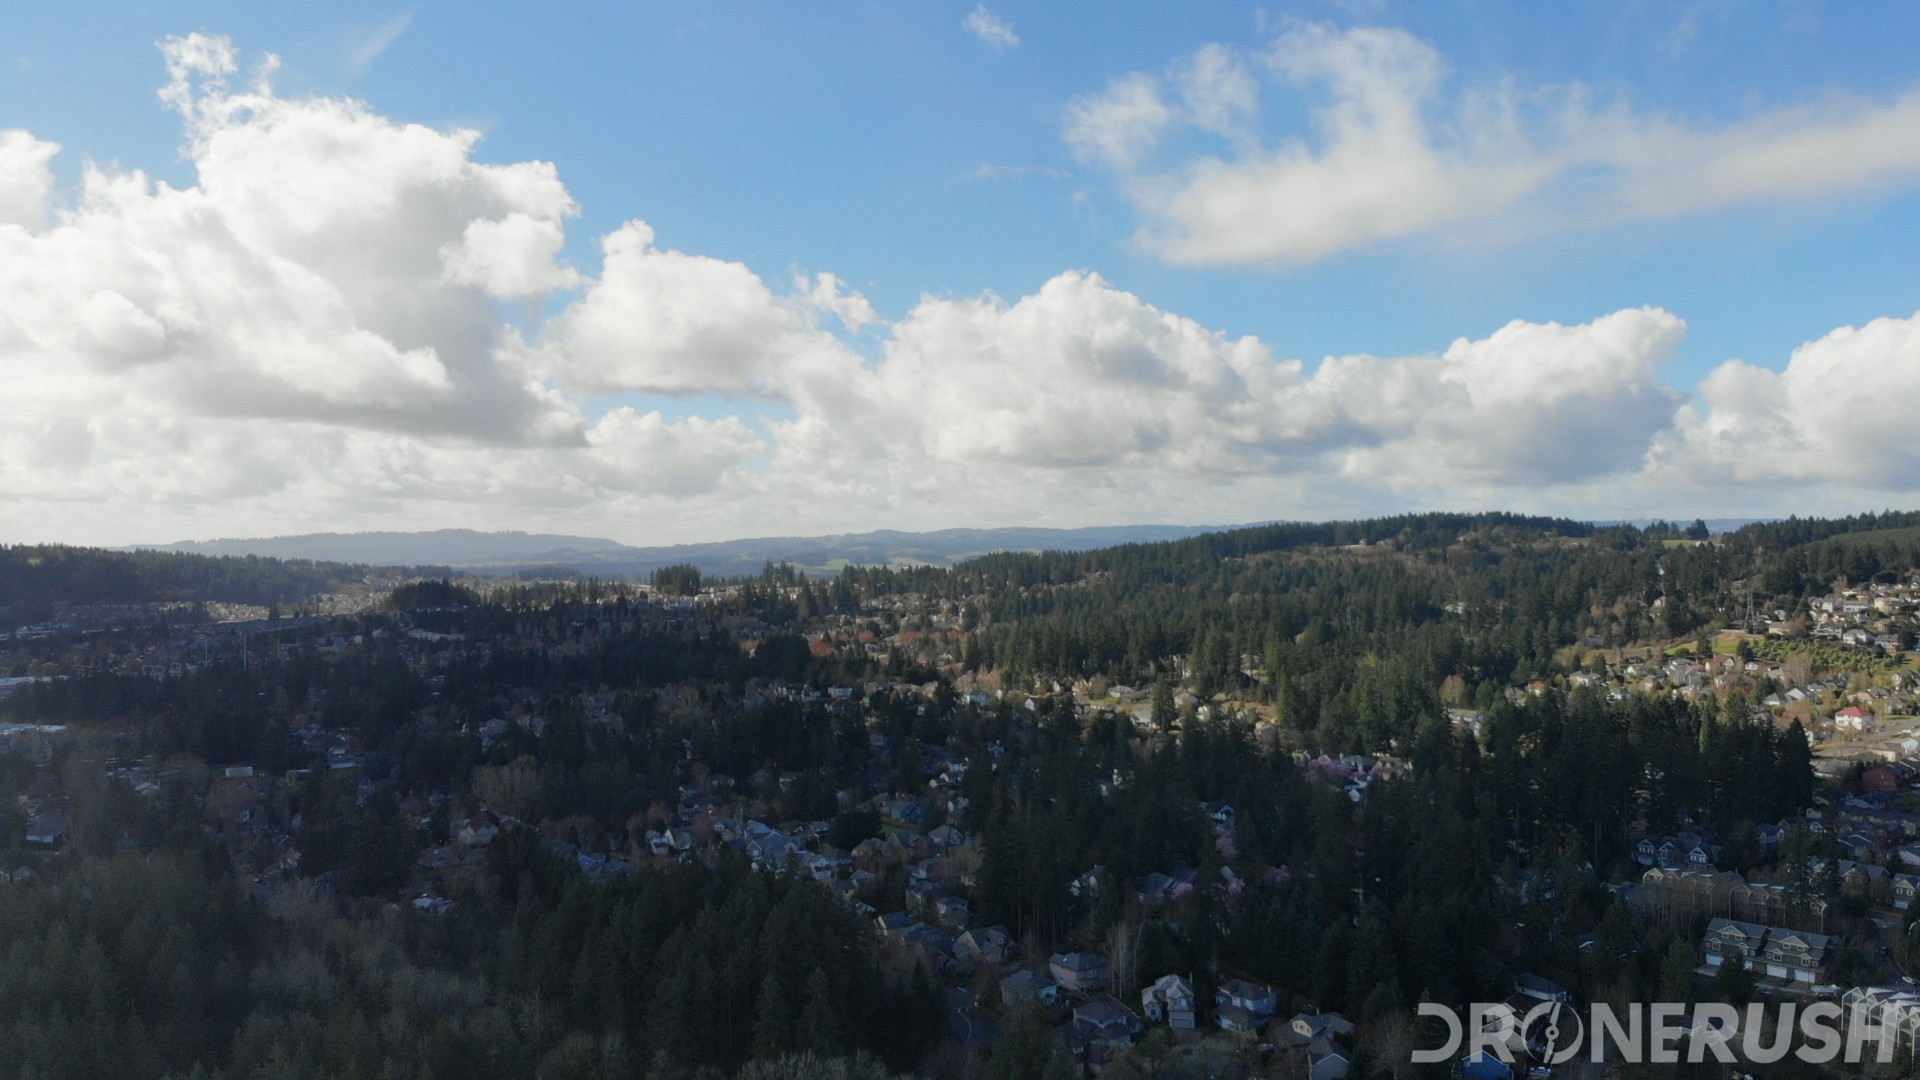 DJI Mavic Air HDR comparison 2